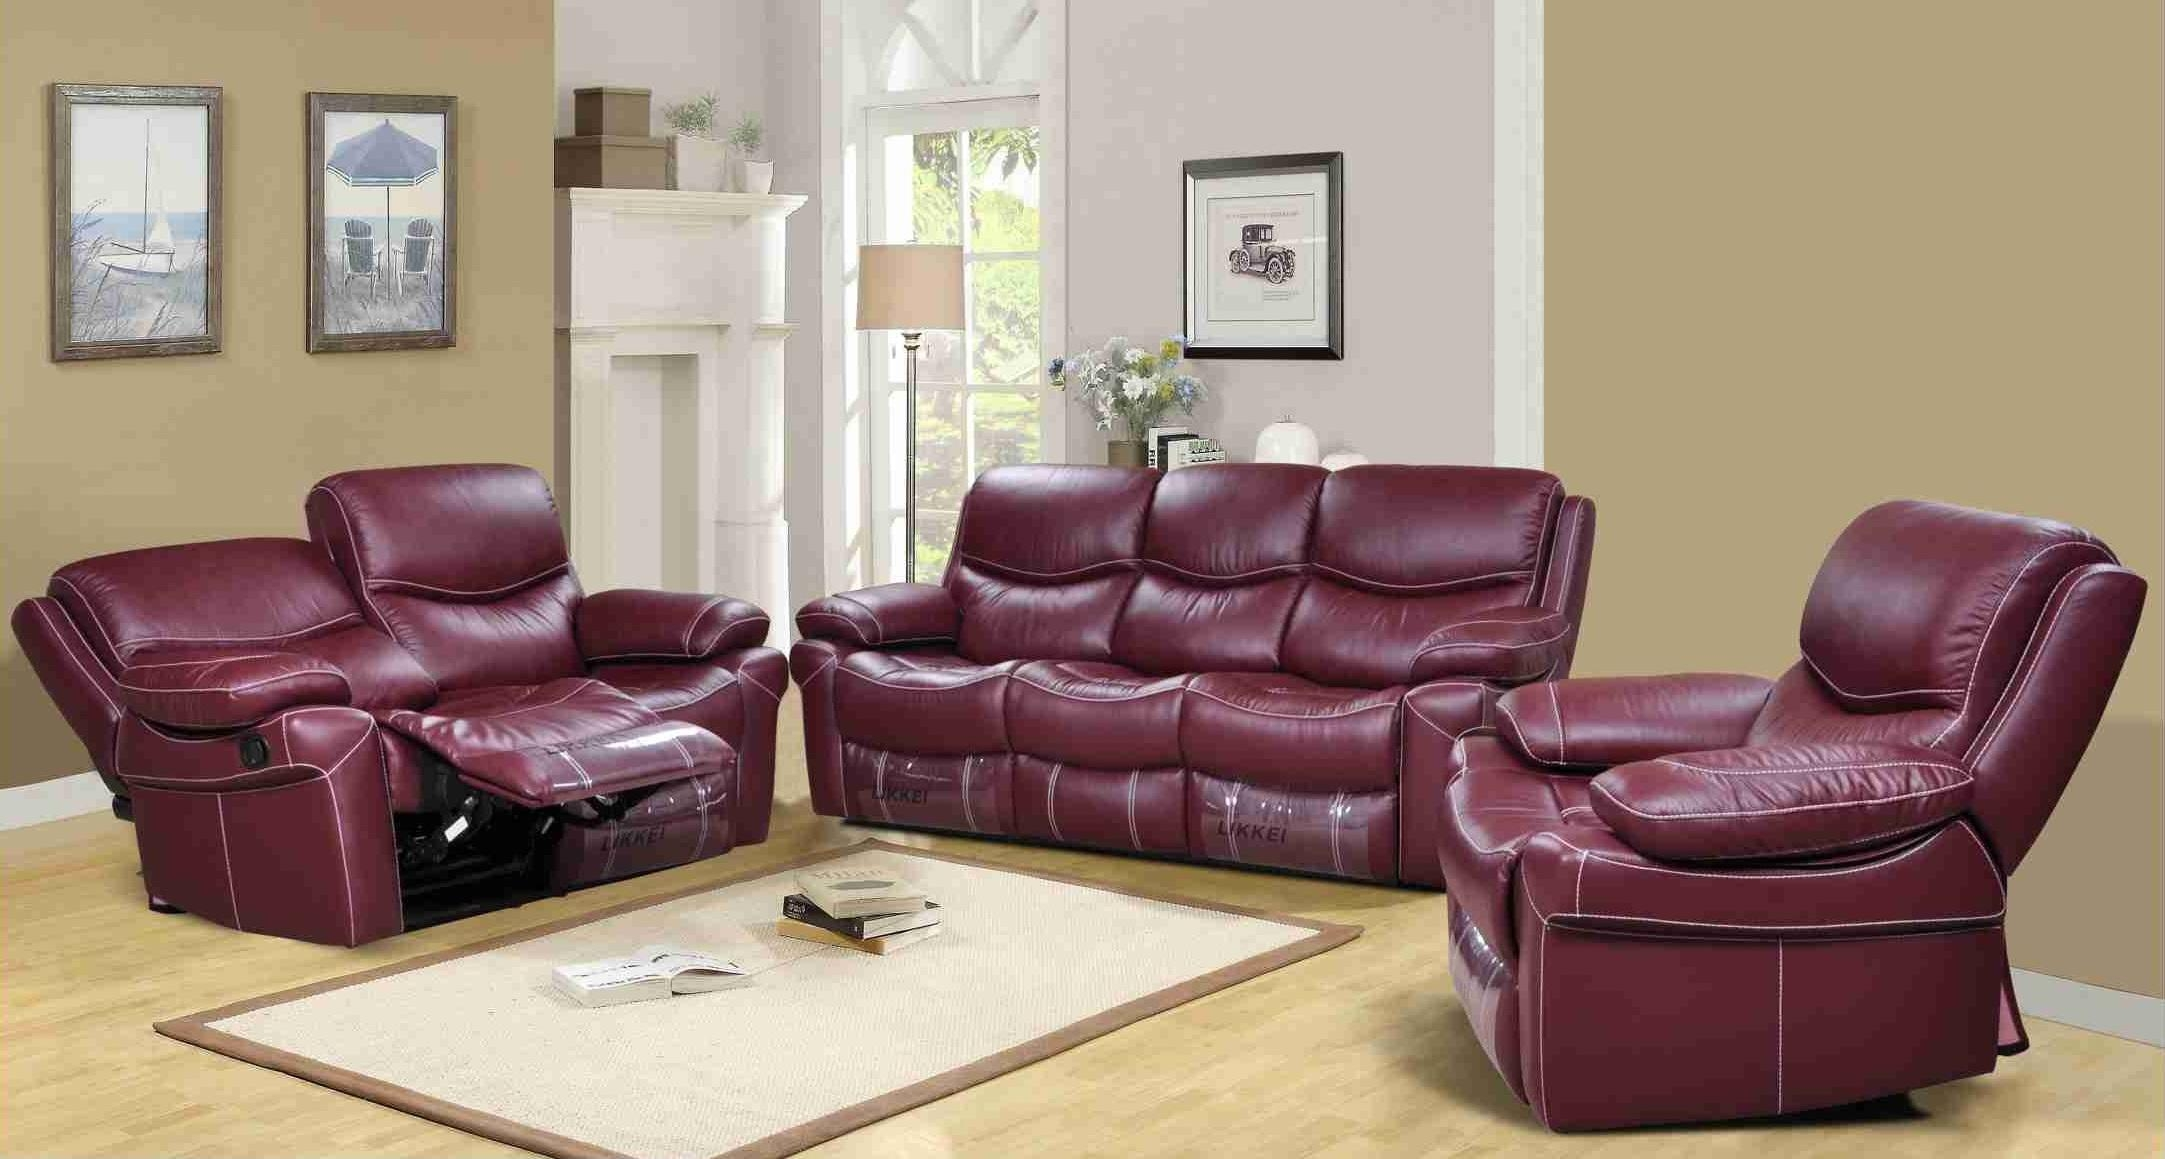 Langdon Burgundy Genuine Leather Power Reclining Sofa Set • Usa Inside Burgundy Leather Sofa Sets (View 15 of 20)